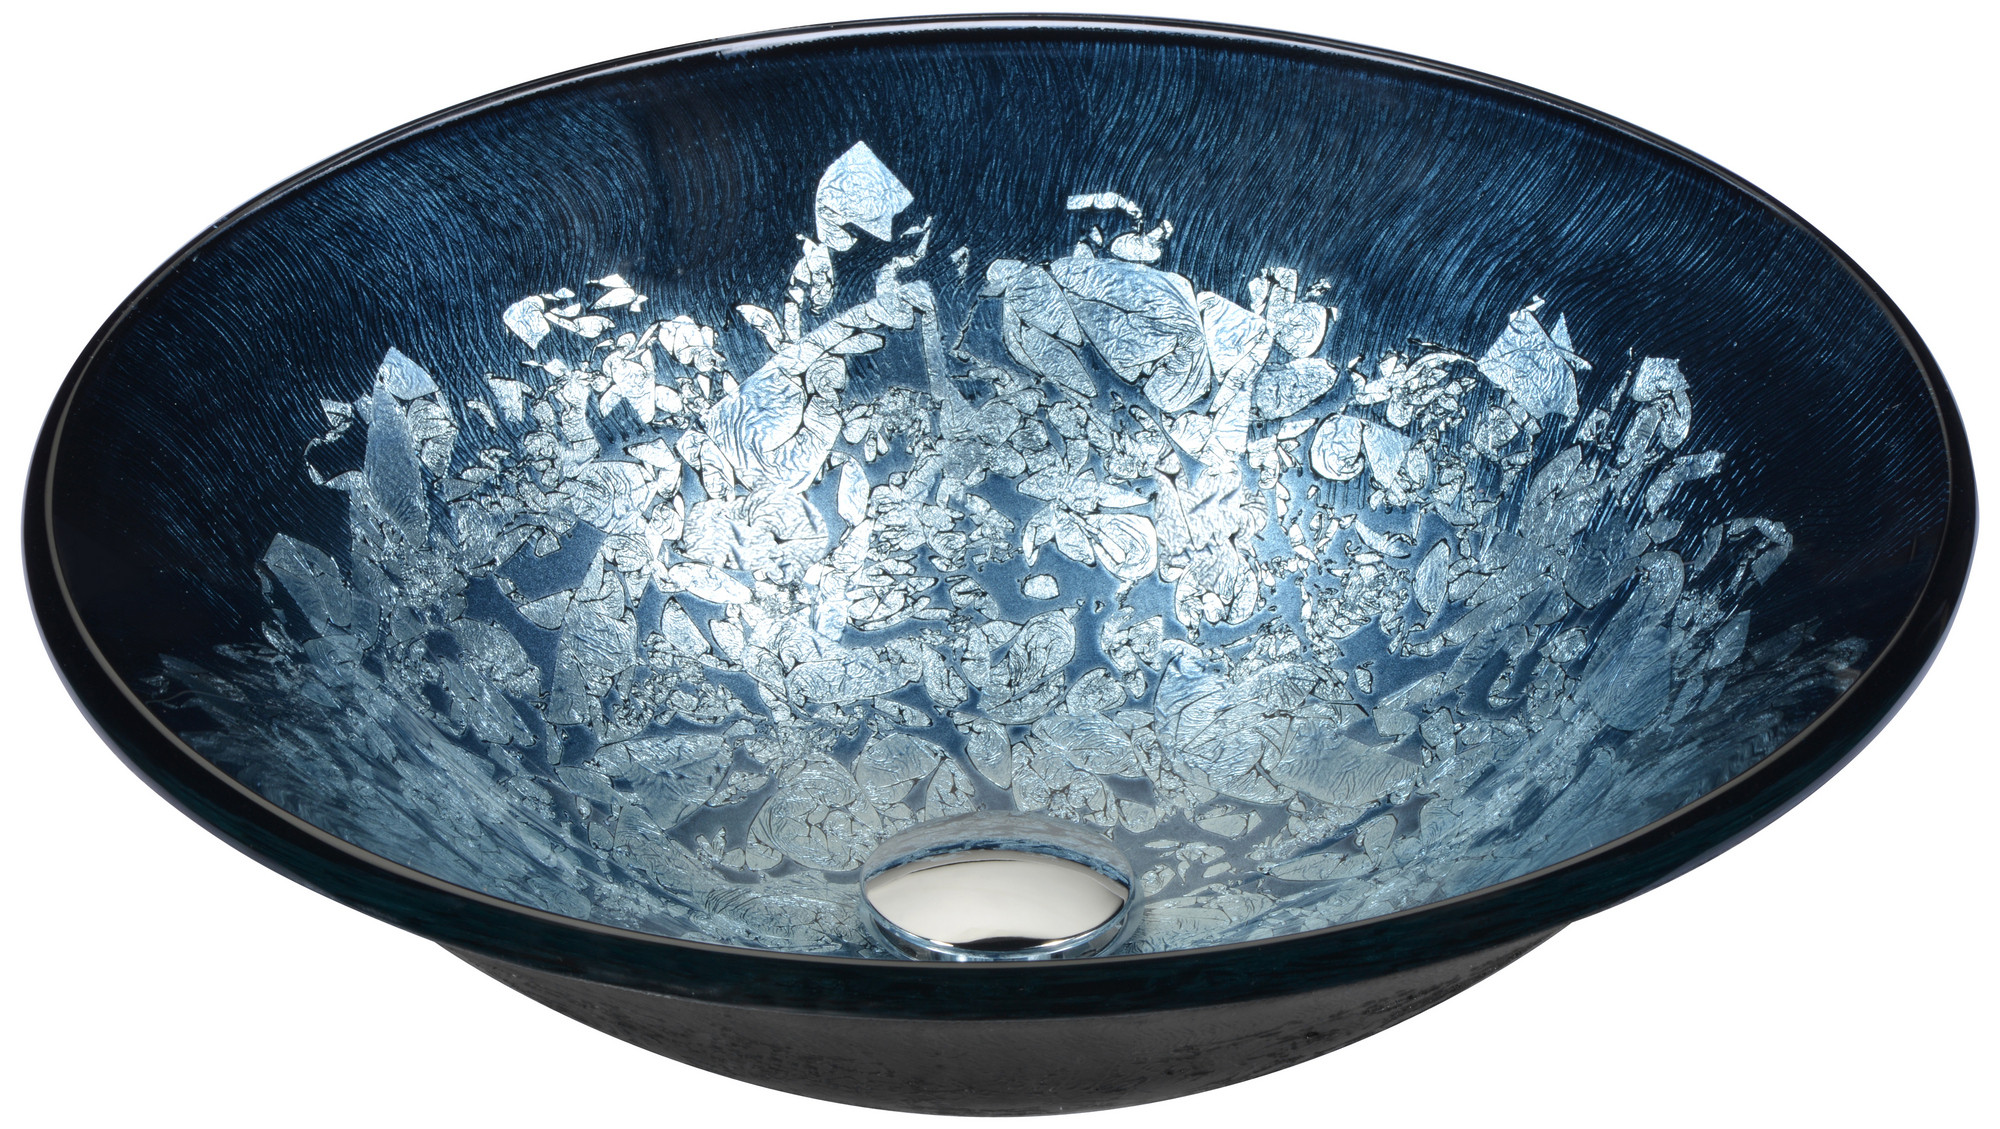 ANZZI LS-AZ212 Chrona Series Tempered Deco-Glass VesselSink In Silver Burst